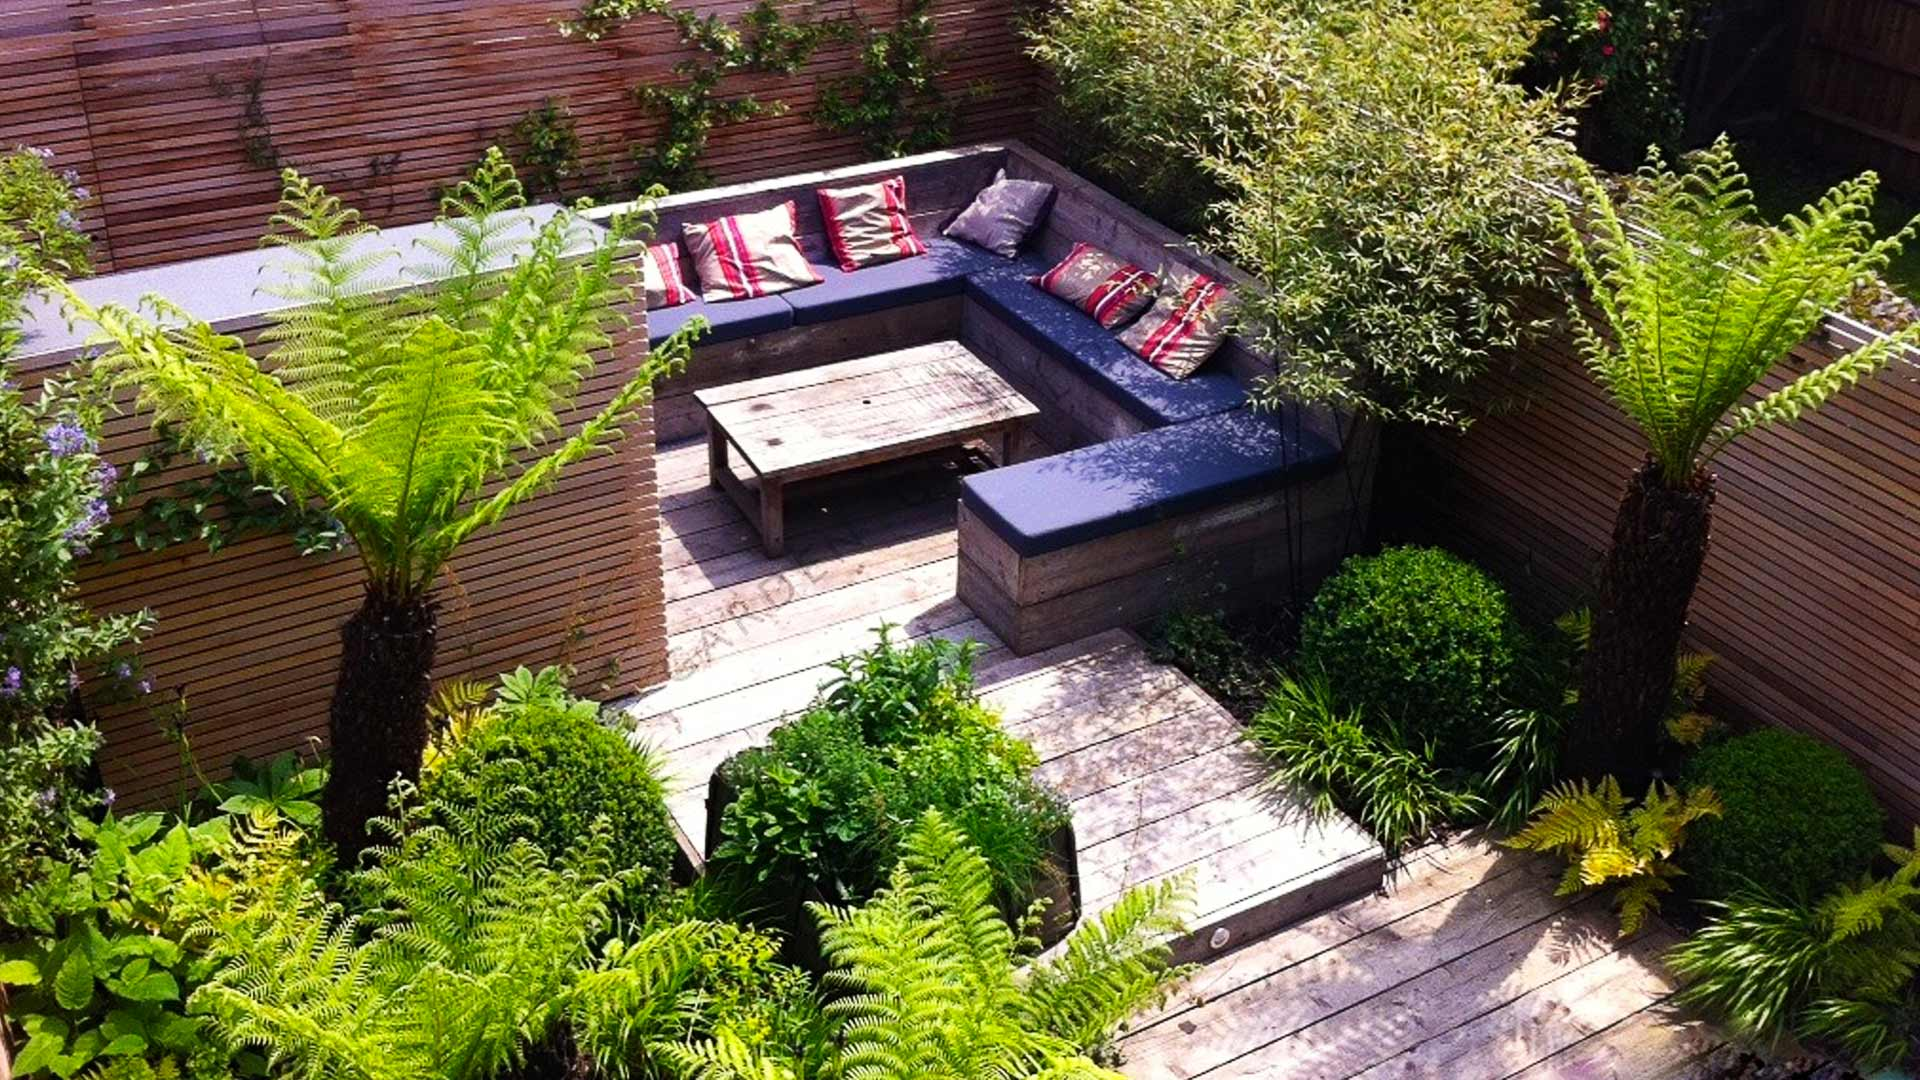 Small garden design sw london garden club london for Garden design instagram